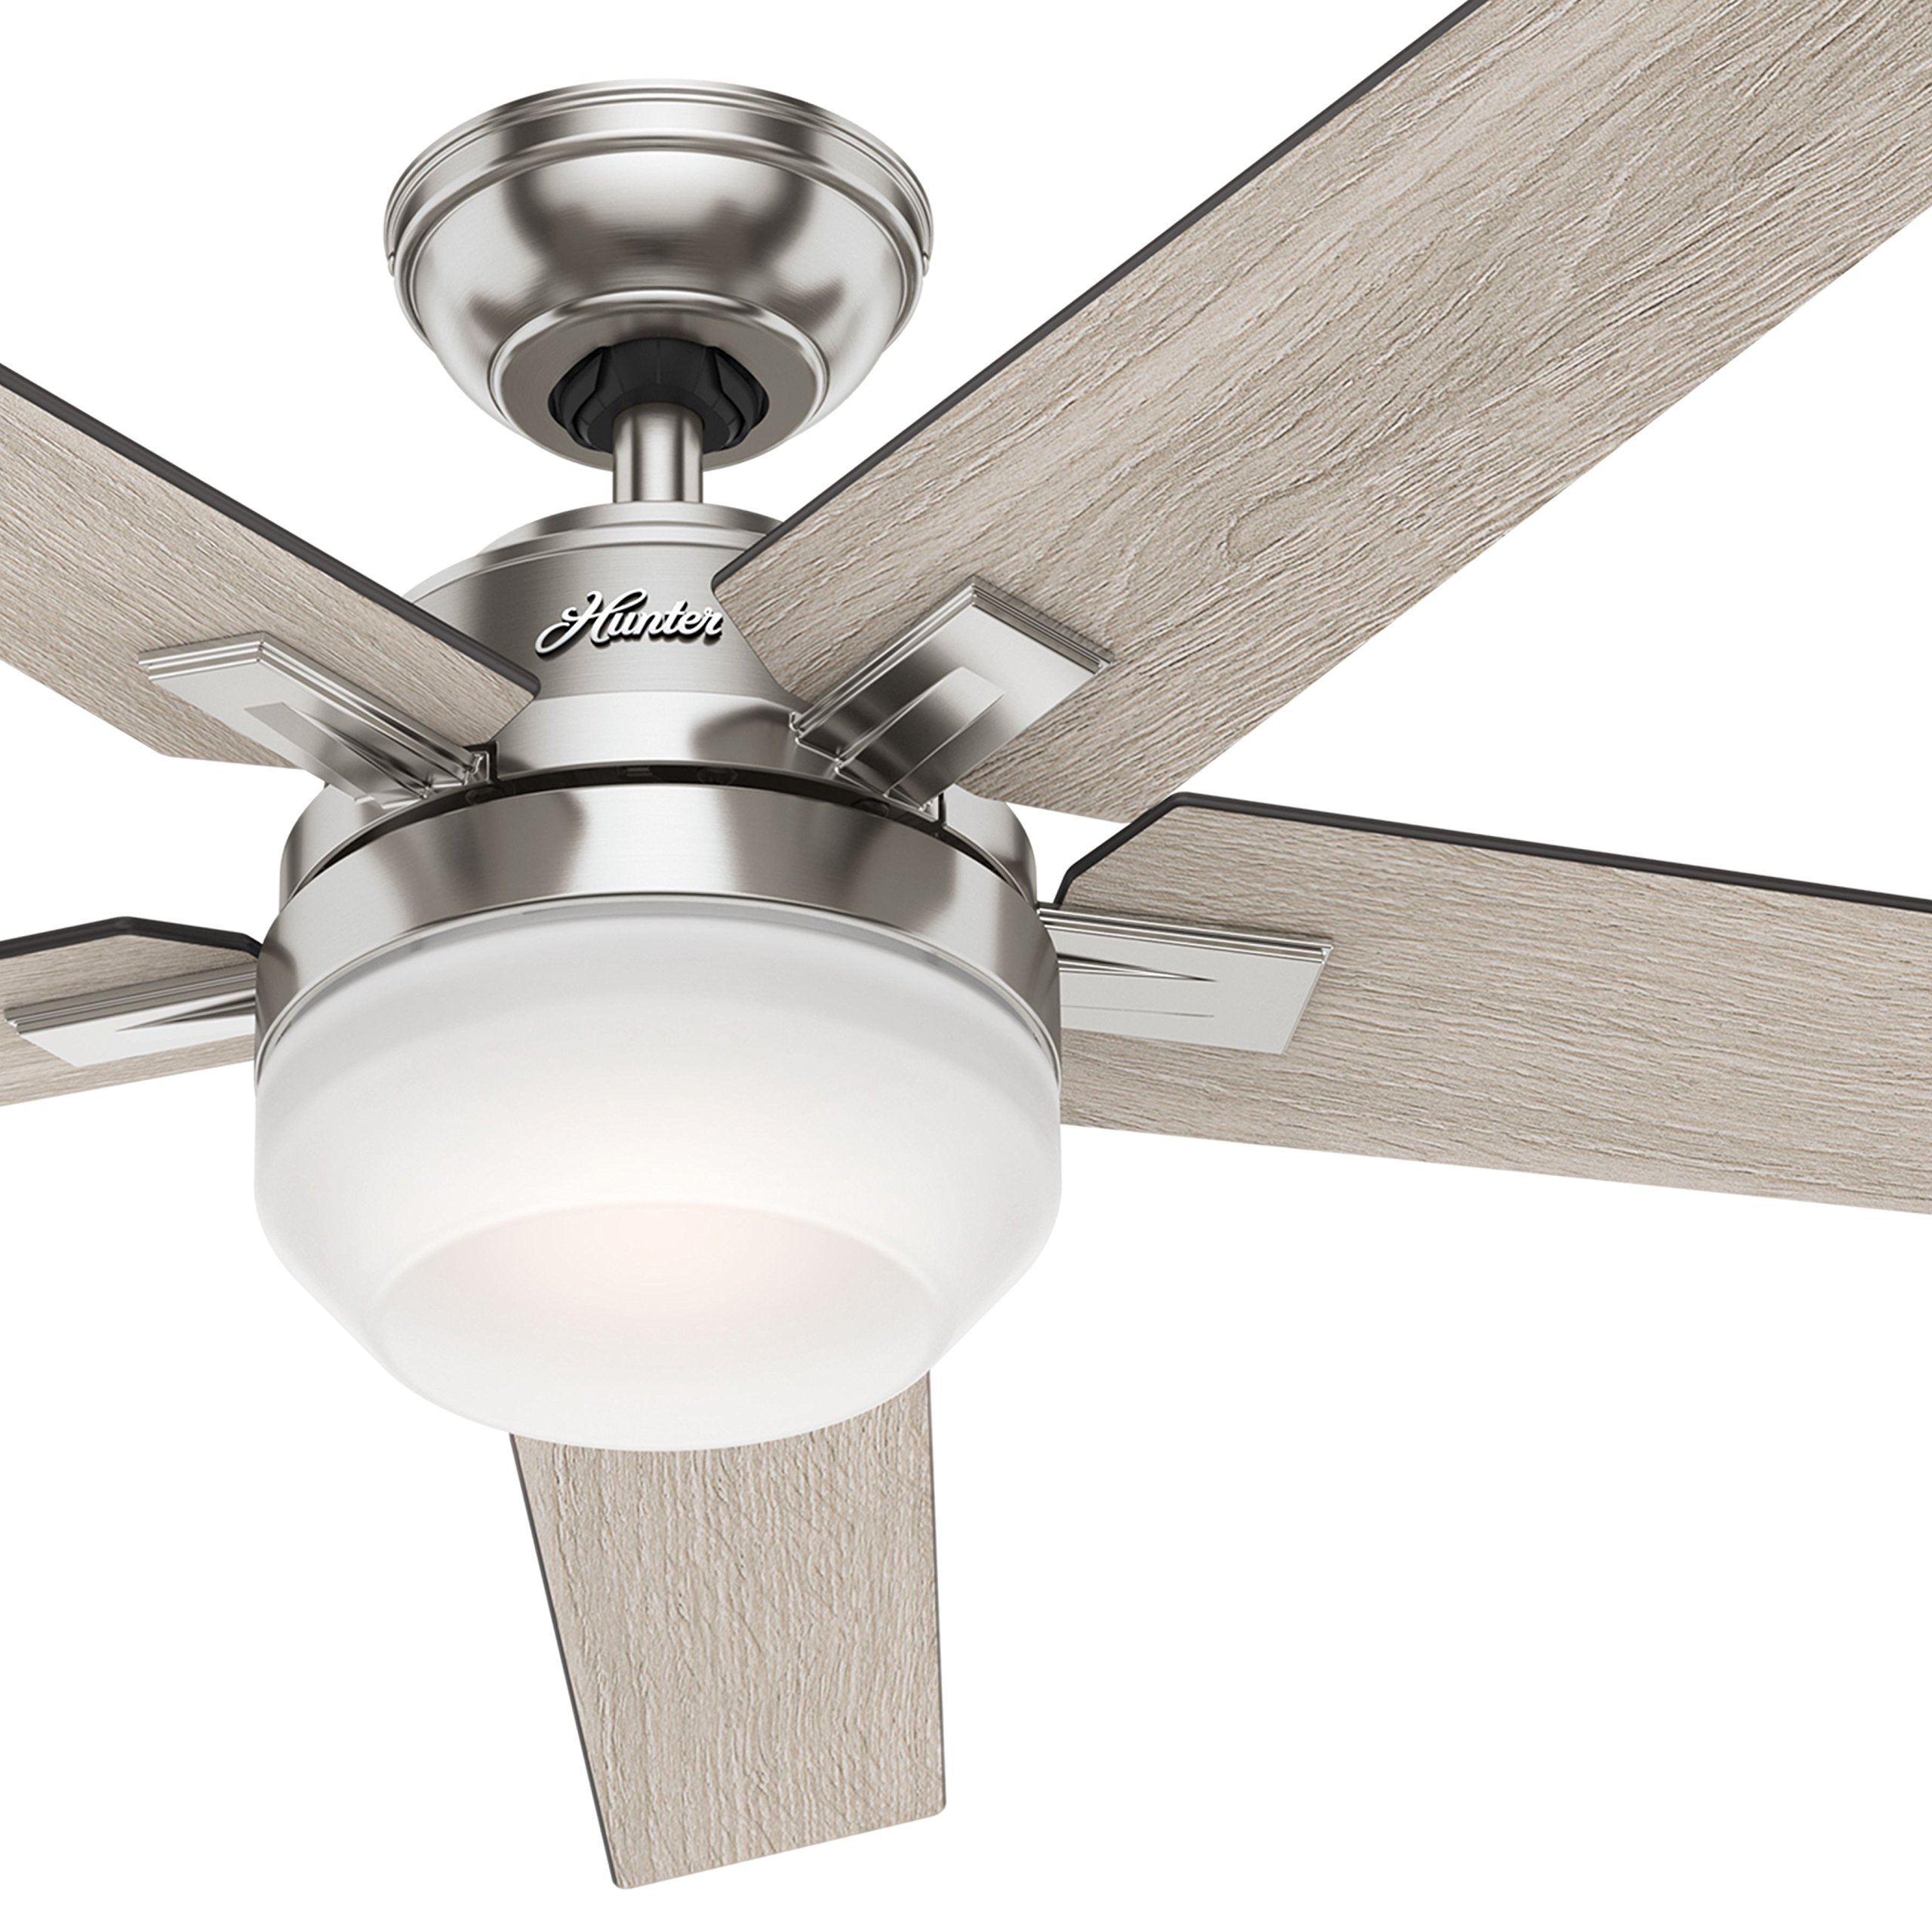 Best Rated In Ceiling Fans Helpful Customer Reviews Your Biggest Fan Installing A Light Kit On An Existing Hunter 54 Brushed Nickel Contemporary With Cased White Led And Remote